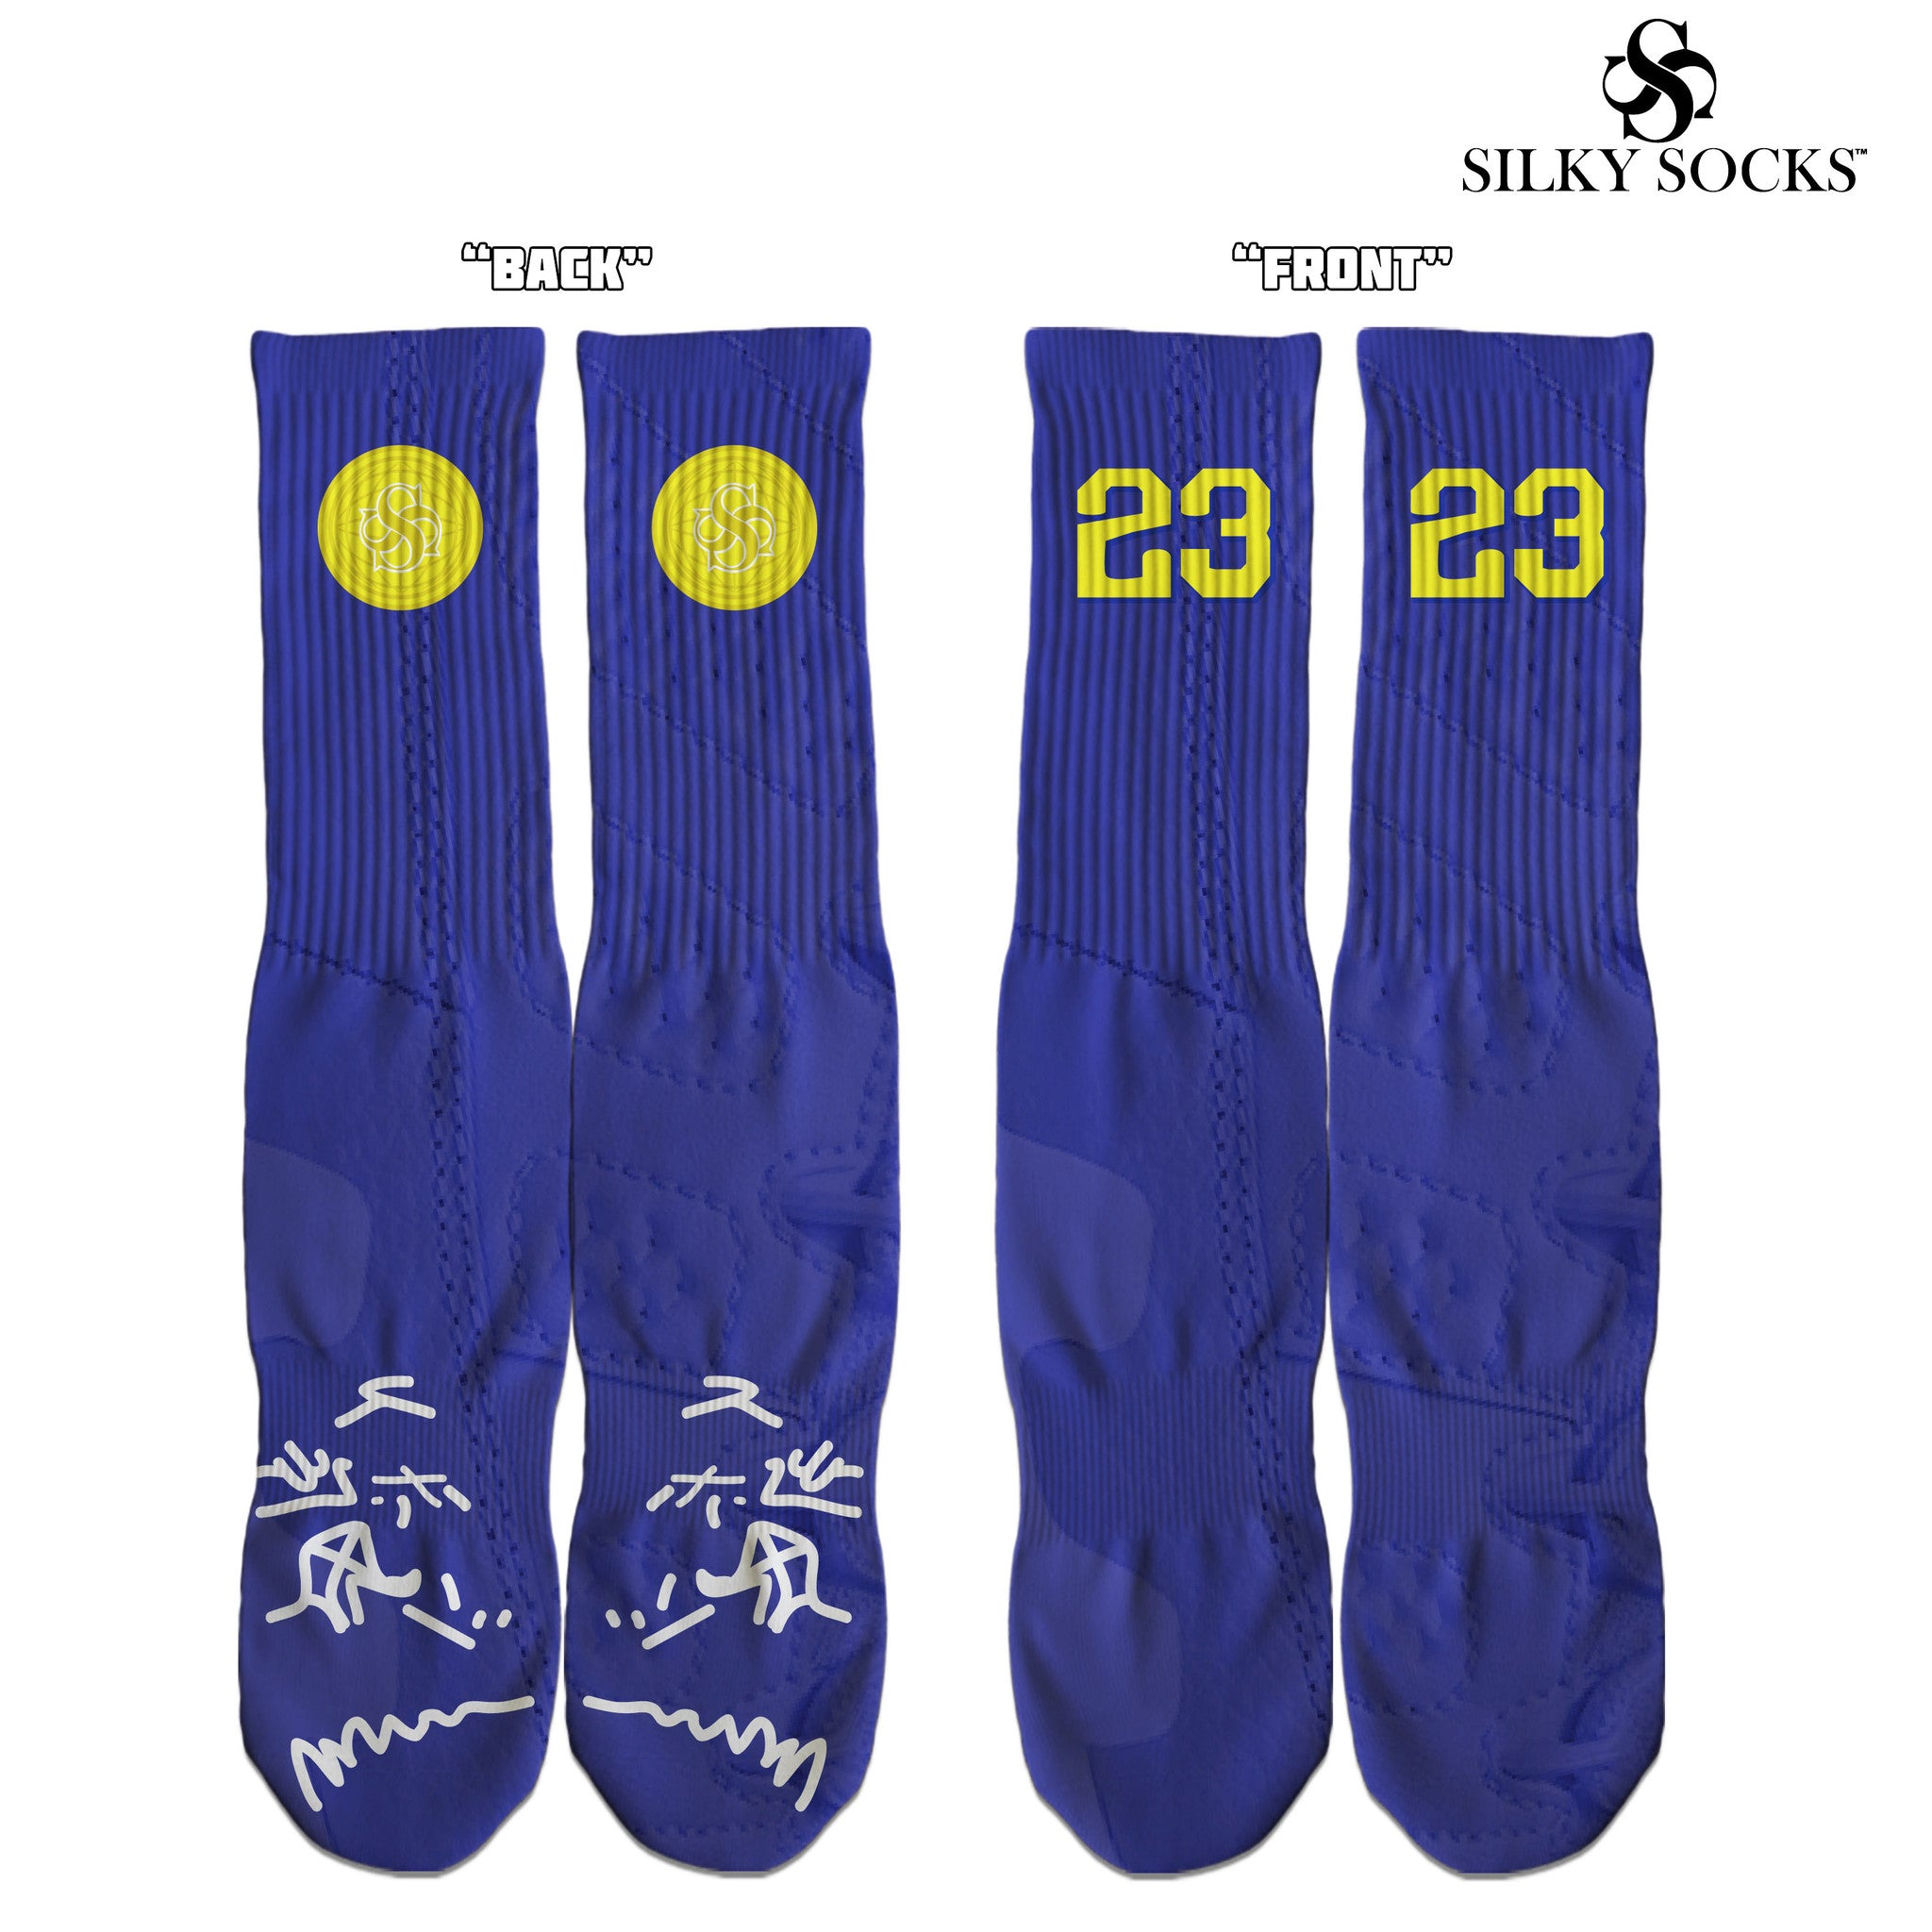 lowest price 5193e a67dd Air Jordan 9 AJ9 Kobe Custom Silky Socks Sublimation All Over Print 23 8  24. Air Jordan 9 AJ9 Kobe Custom Silky Socks Sublimation All Over Print 23  8 24